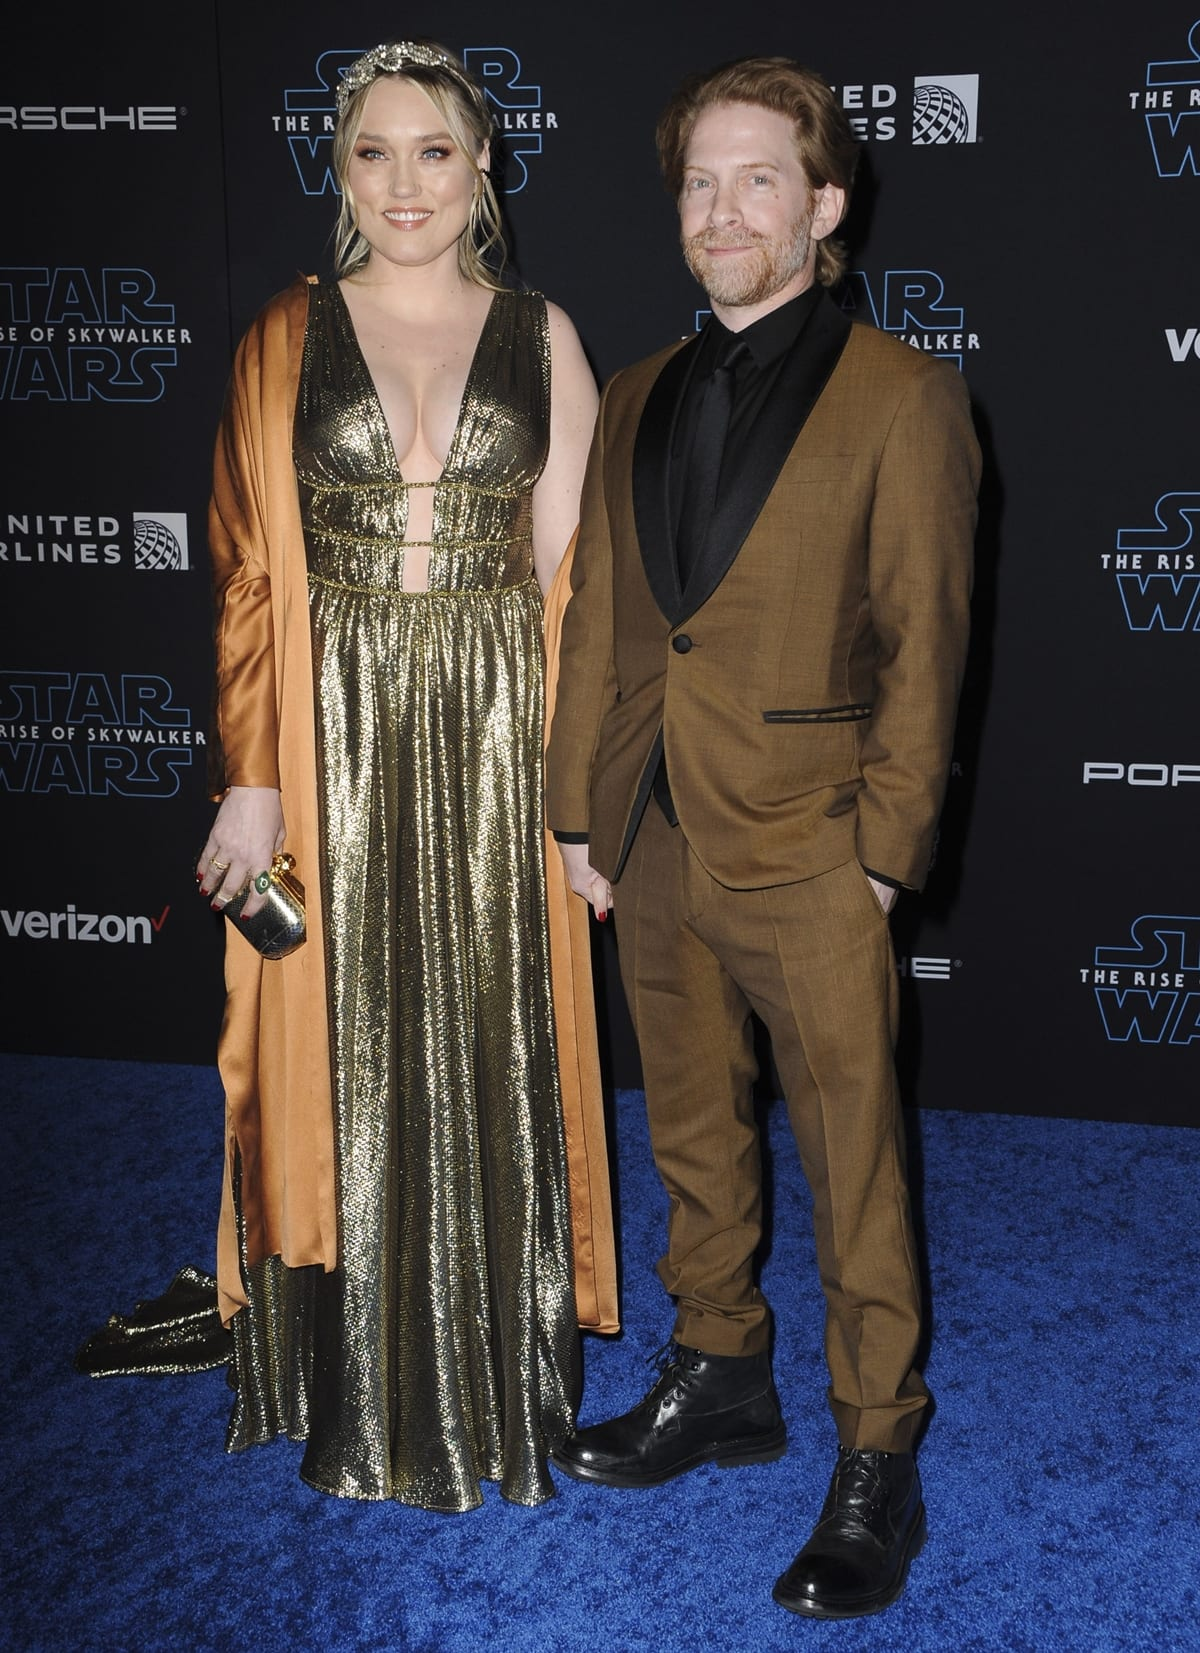 """Actress Clare Grant (L) and actor Seth Green attend the premiere of Disney's """"Star Wars: The Rise of Skywalker"""""""